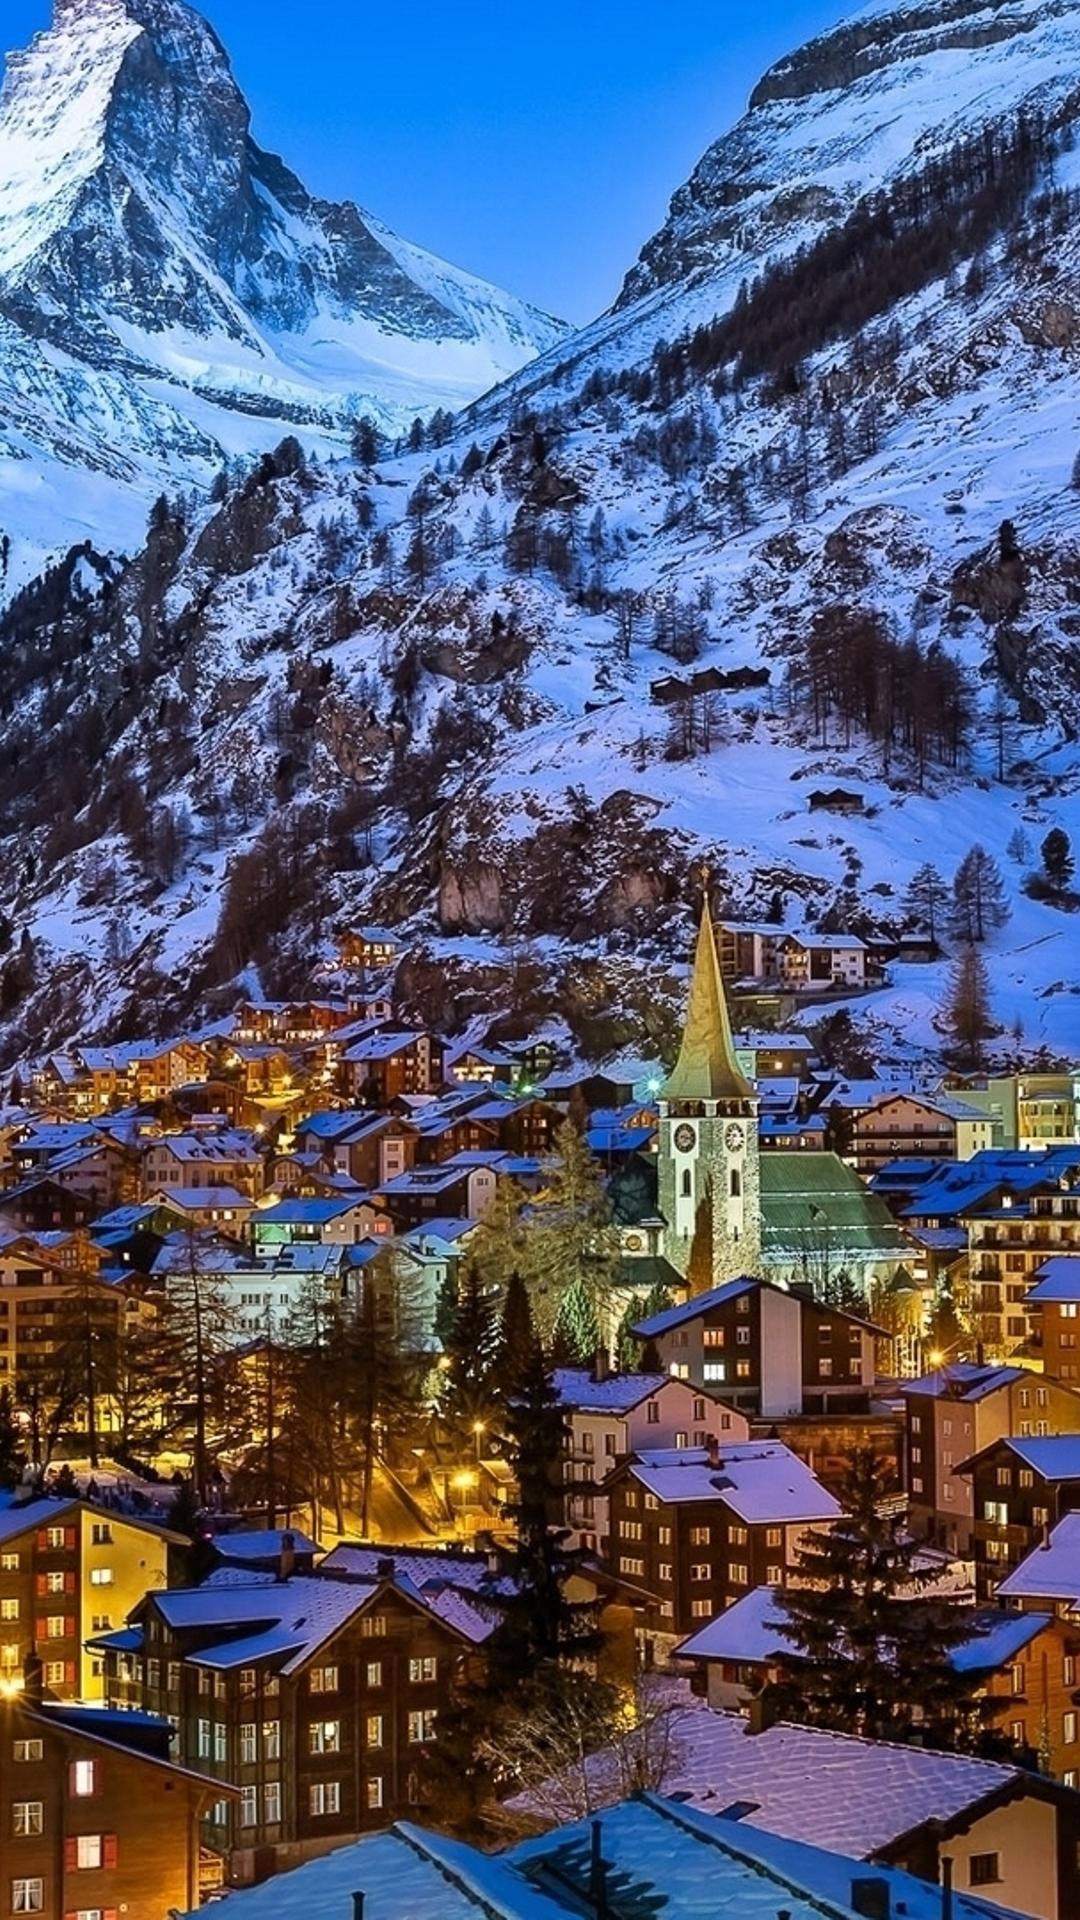 winter at zermatt valley switzerland wallpaper download 1080x1920